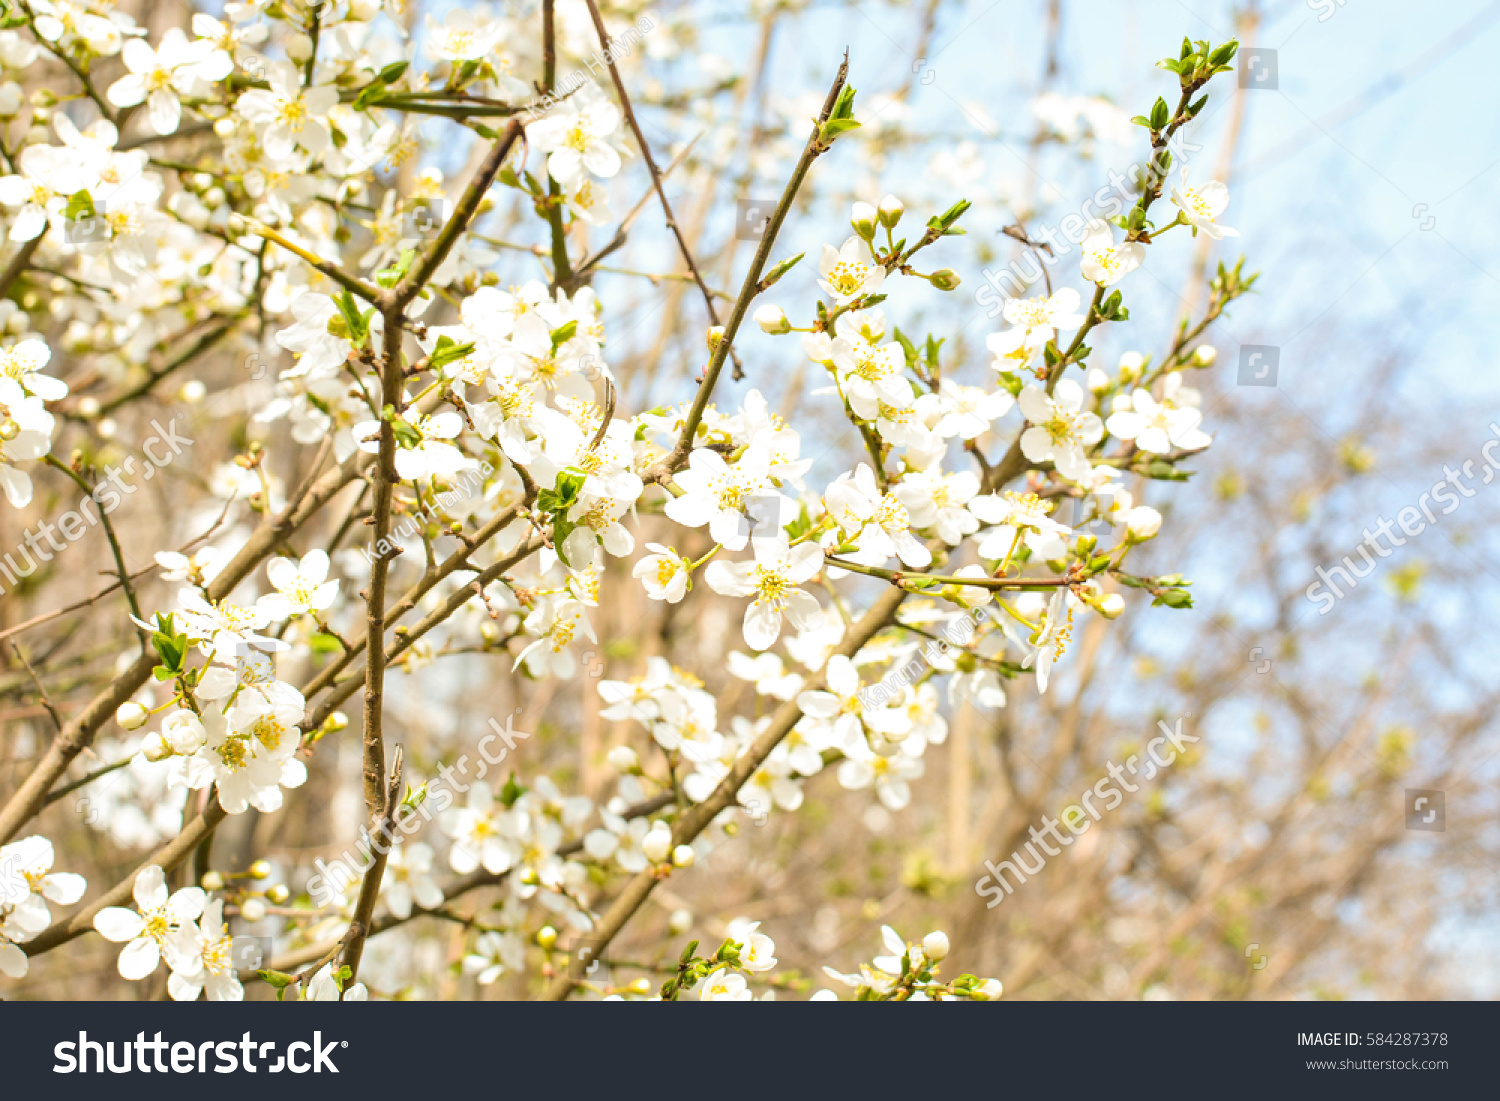 Apple tree spring blooms soft background stock photo 584287378 apple tree spring blooms in soft background of branches and sky early spring white mightylinksfo